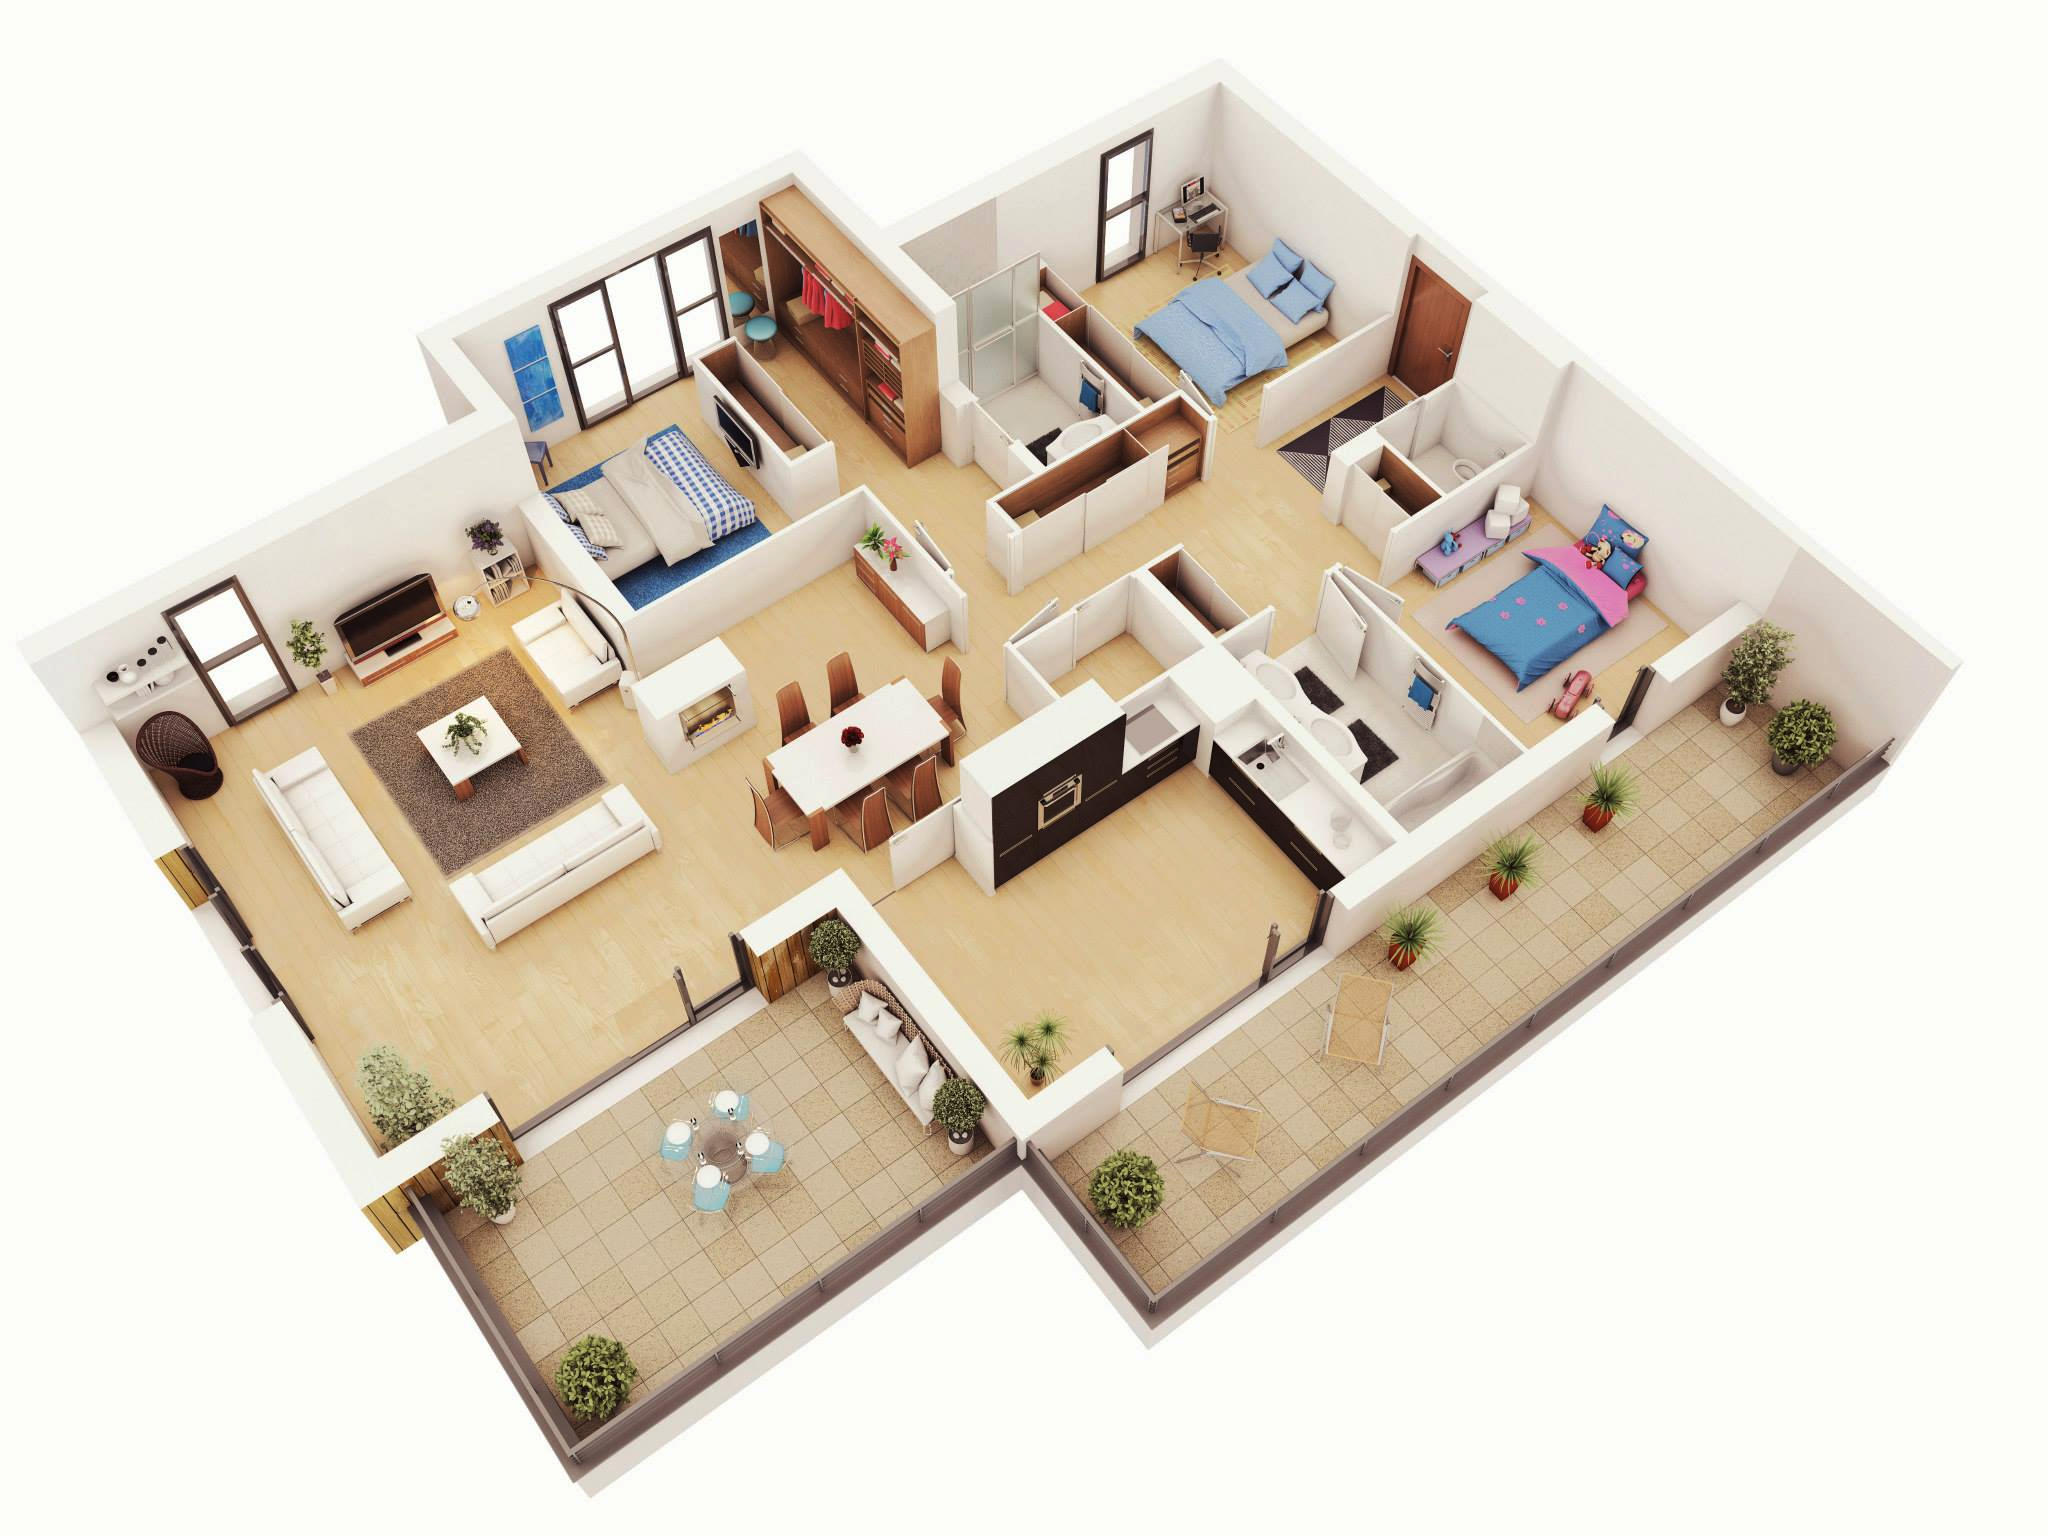 More Bedroom D Floor Plans Architects D And Building - Three 3 bedroom houses